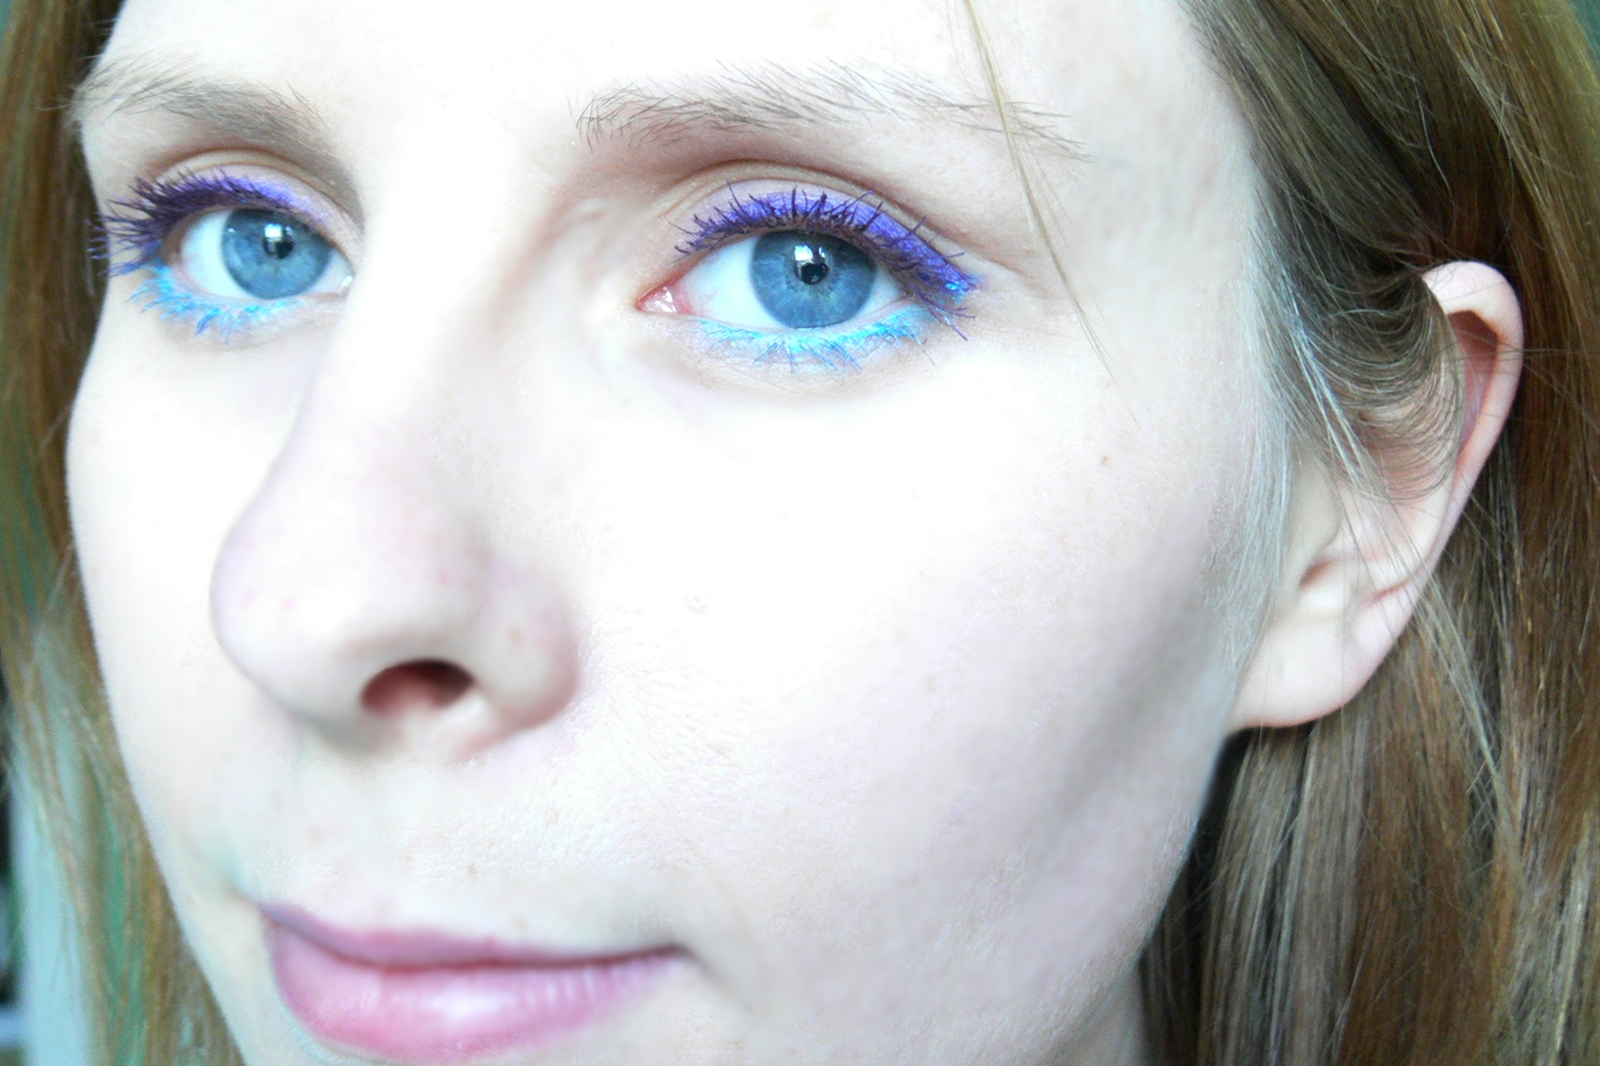 Kredka do oczu AVON Glimmerstick Brights - Purple Peach + Aqua Shock